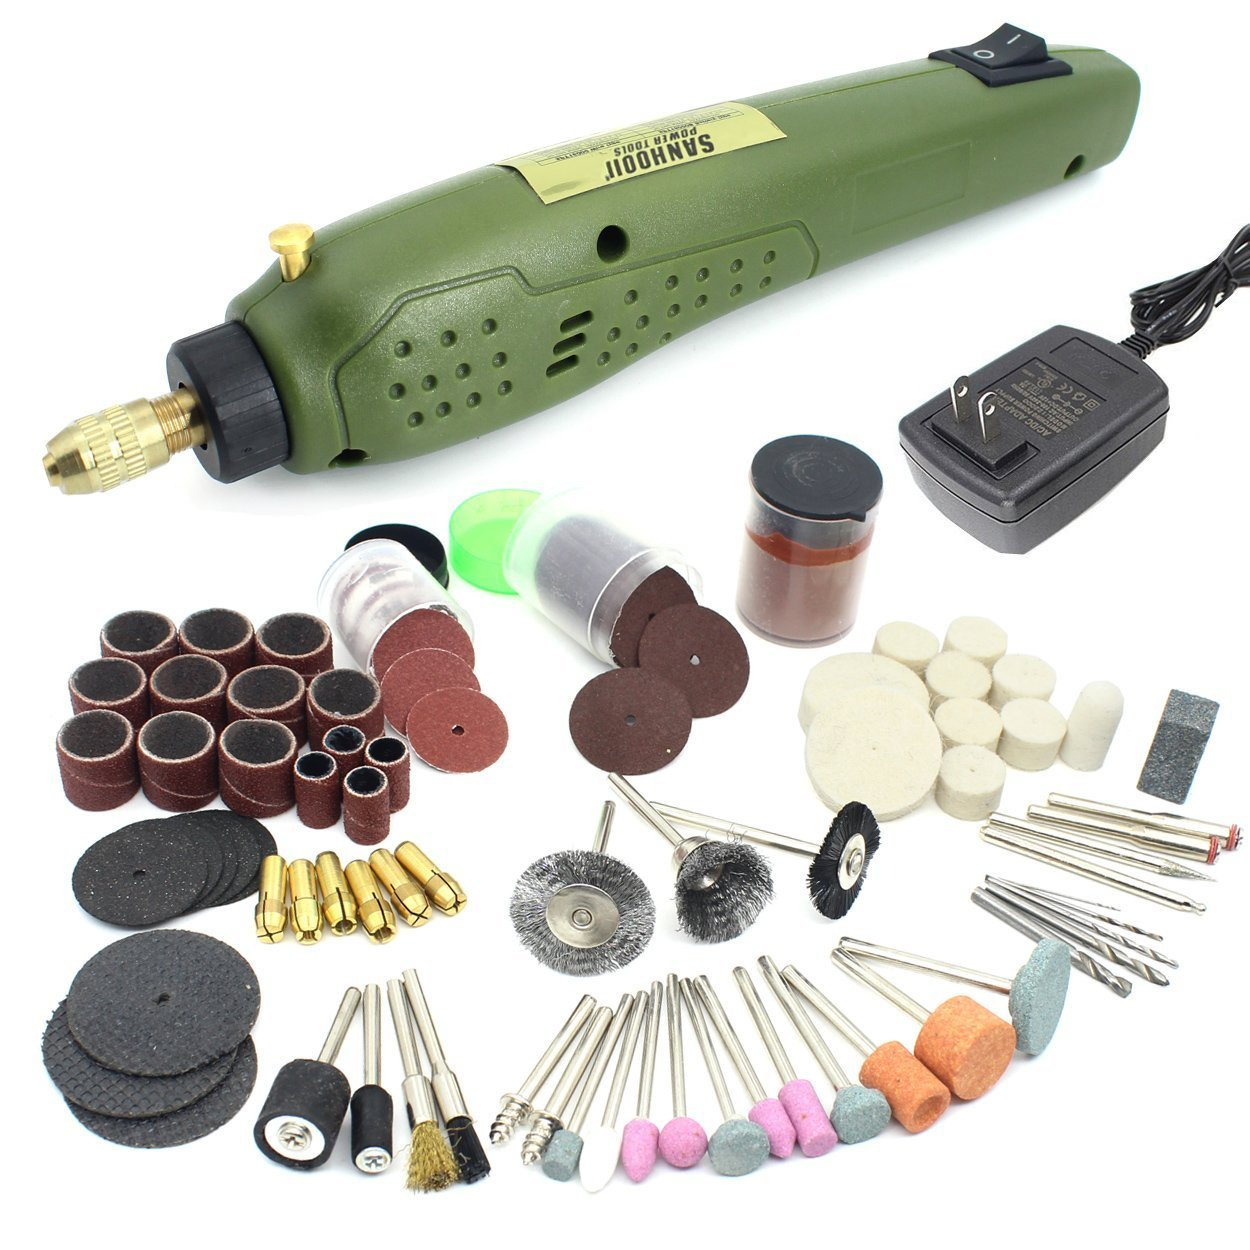 Sanhooii Mini Rotary Tool Kit With 115pcs Accessories Set For Wood Jewel Stone Small Crafts Cutting Drilling Grinding Engraving